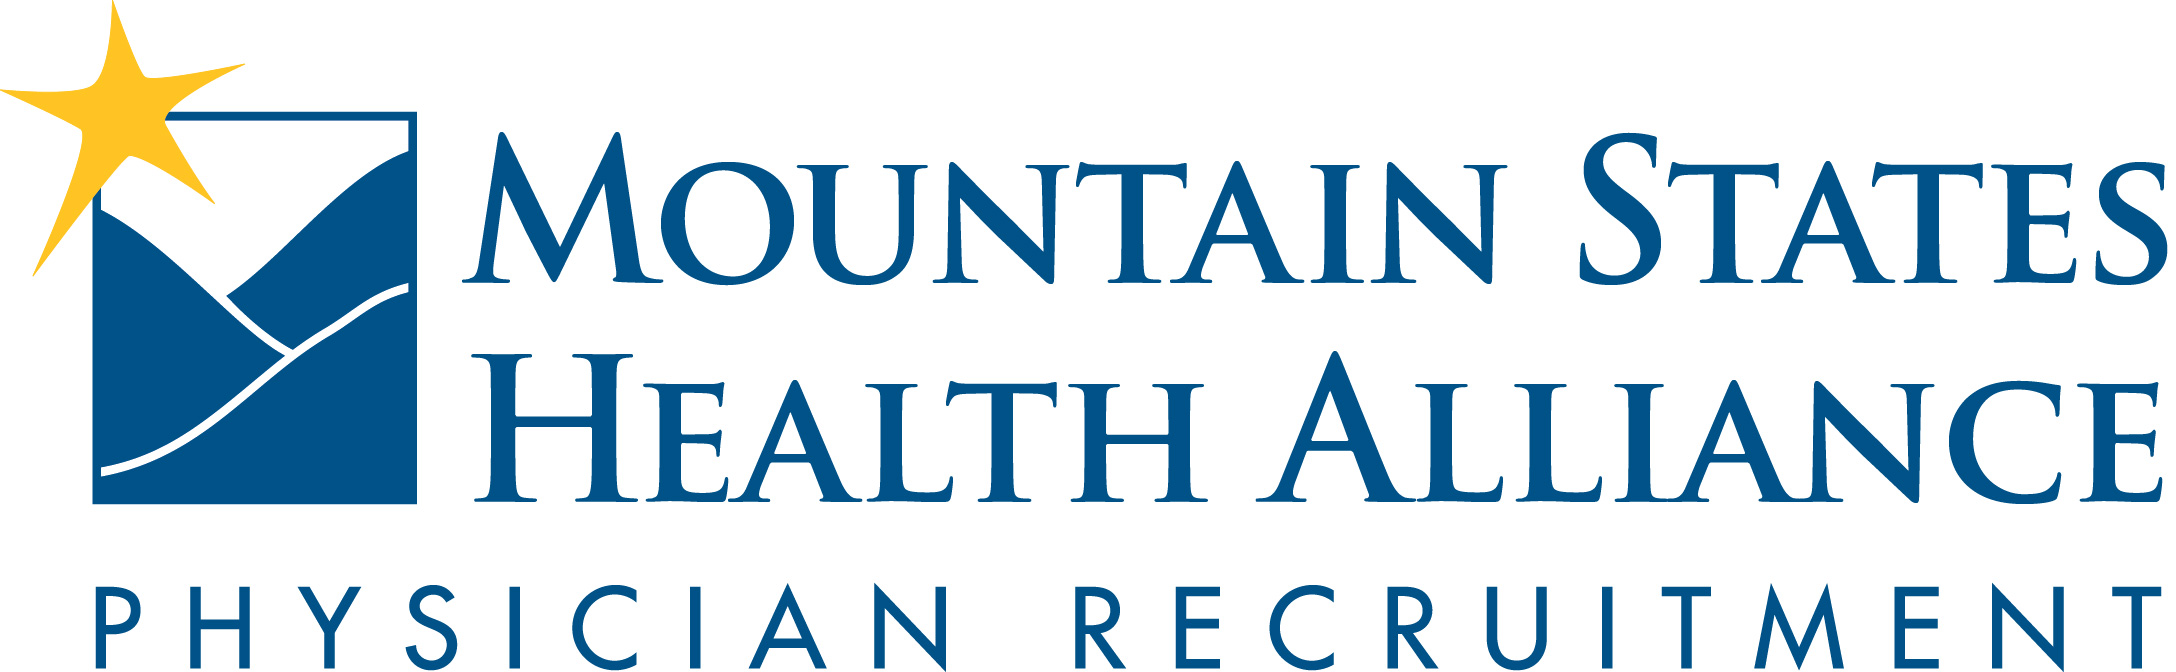 Mountain State Health Alliance